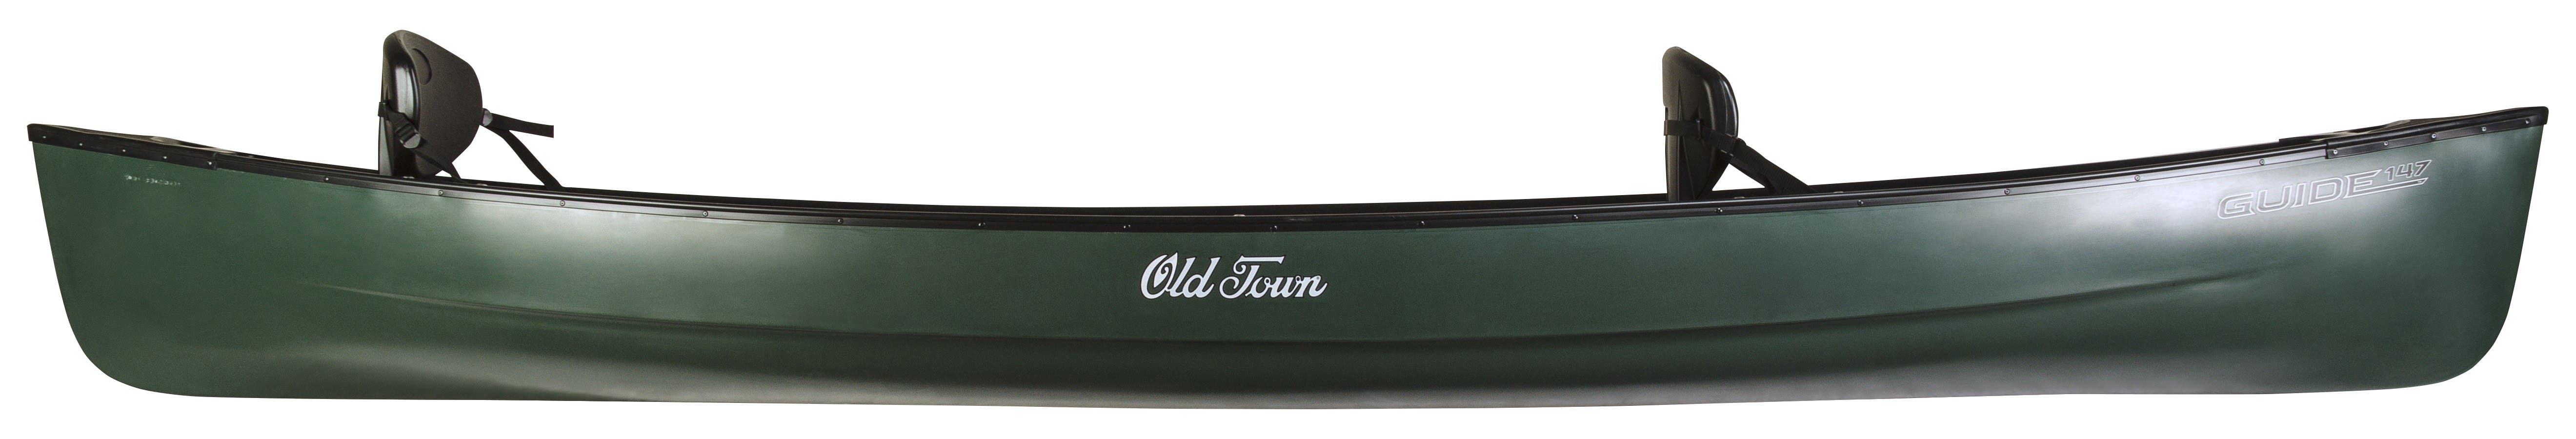 2021 Old Town boat for sale, model of the boat is Guide 147 & Image # 5 of 6